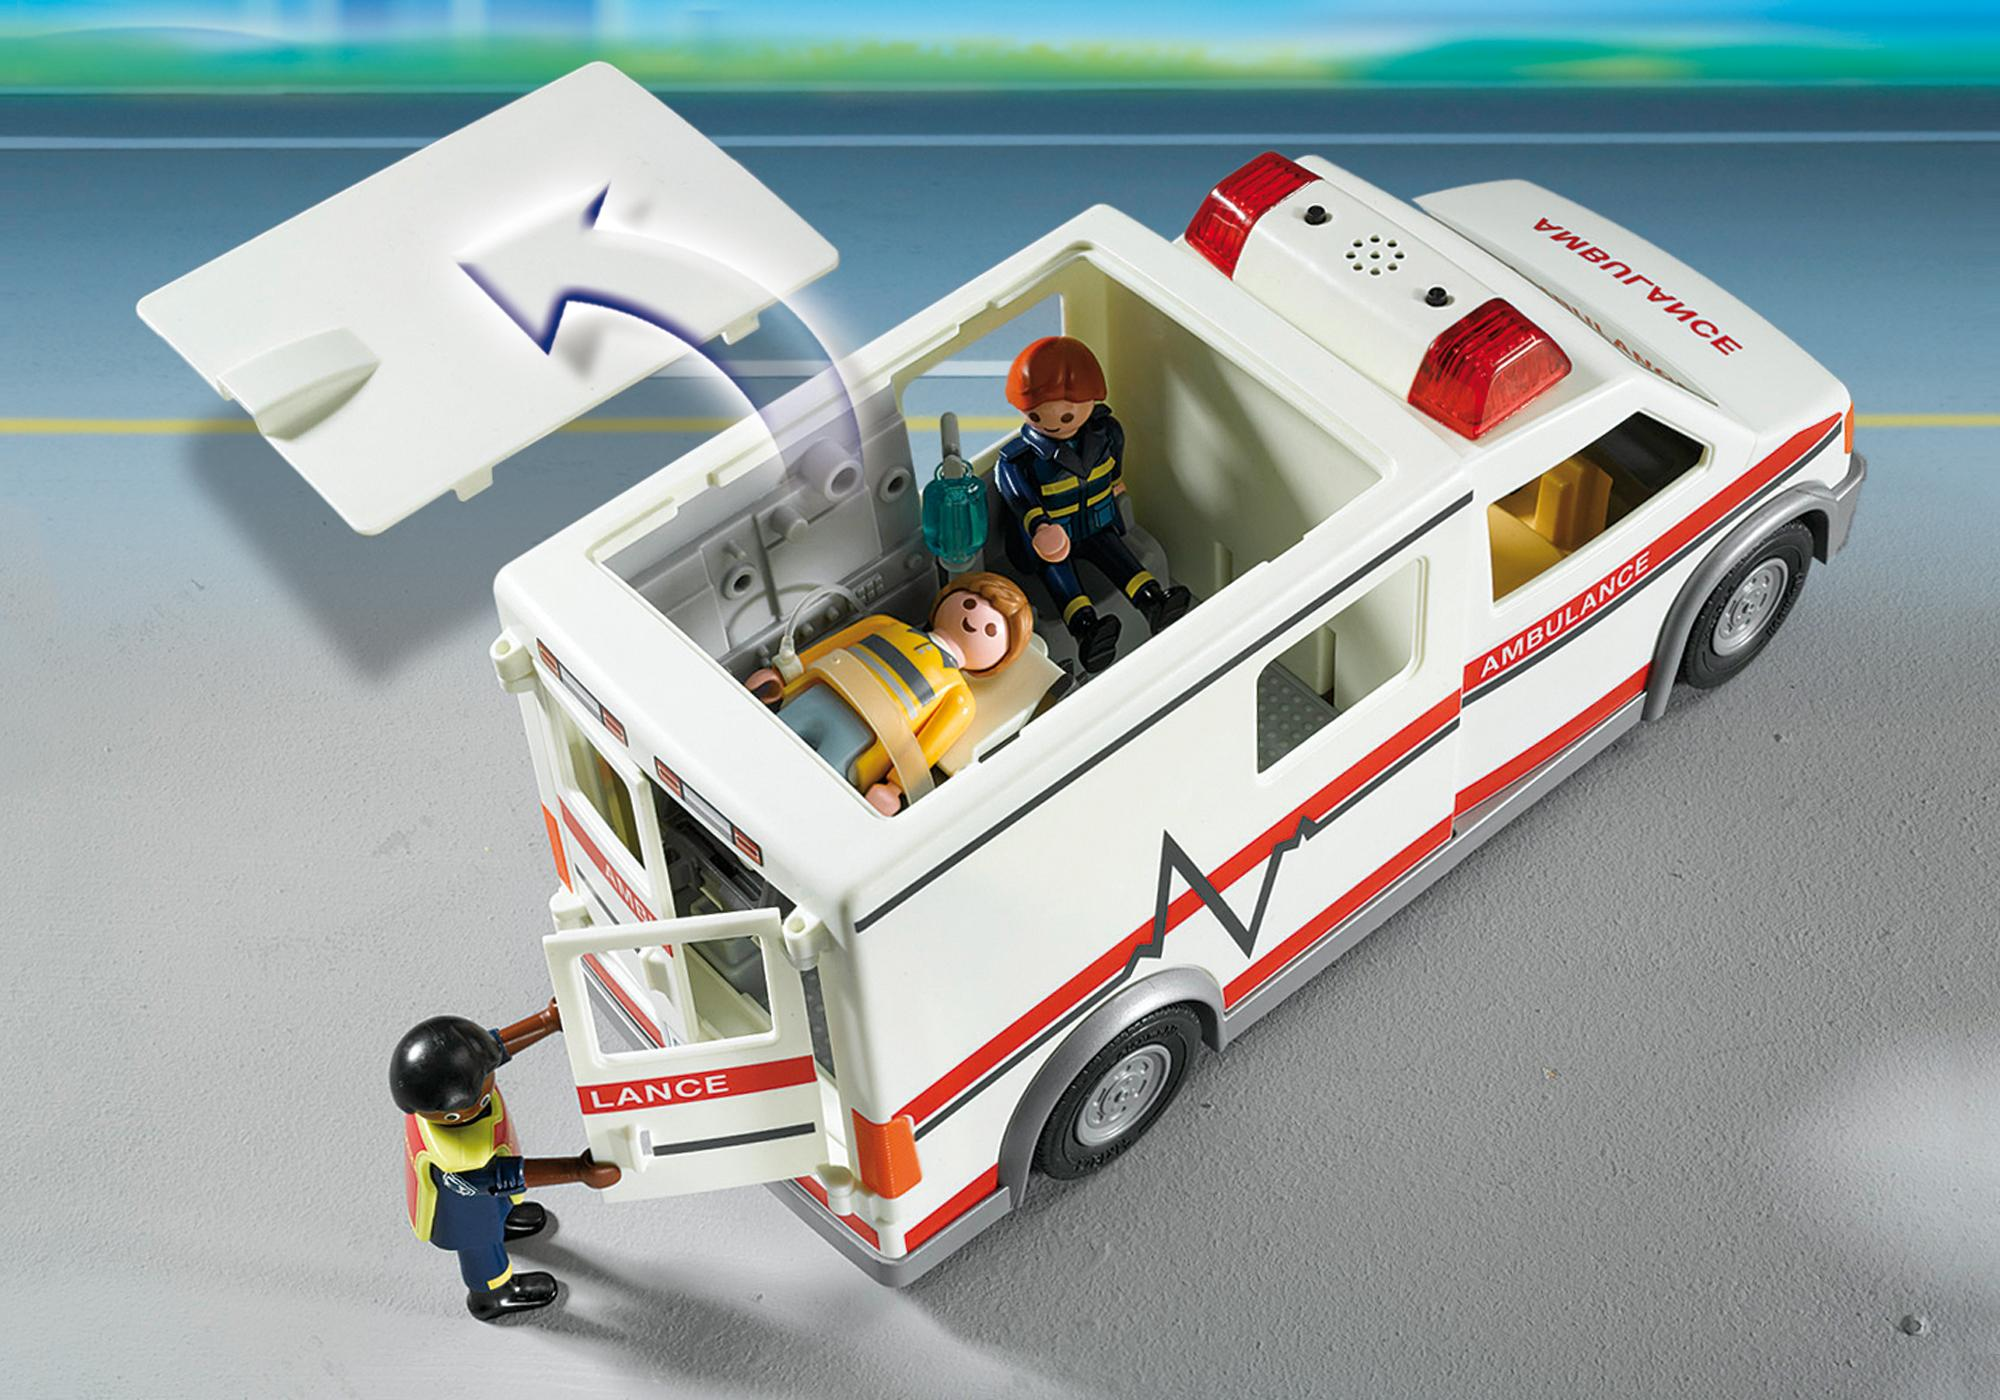 http://media.playmobil.com/i/playmobil/5681_product_extra1/Rescue Ambulance